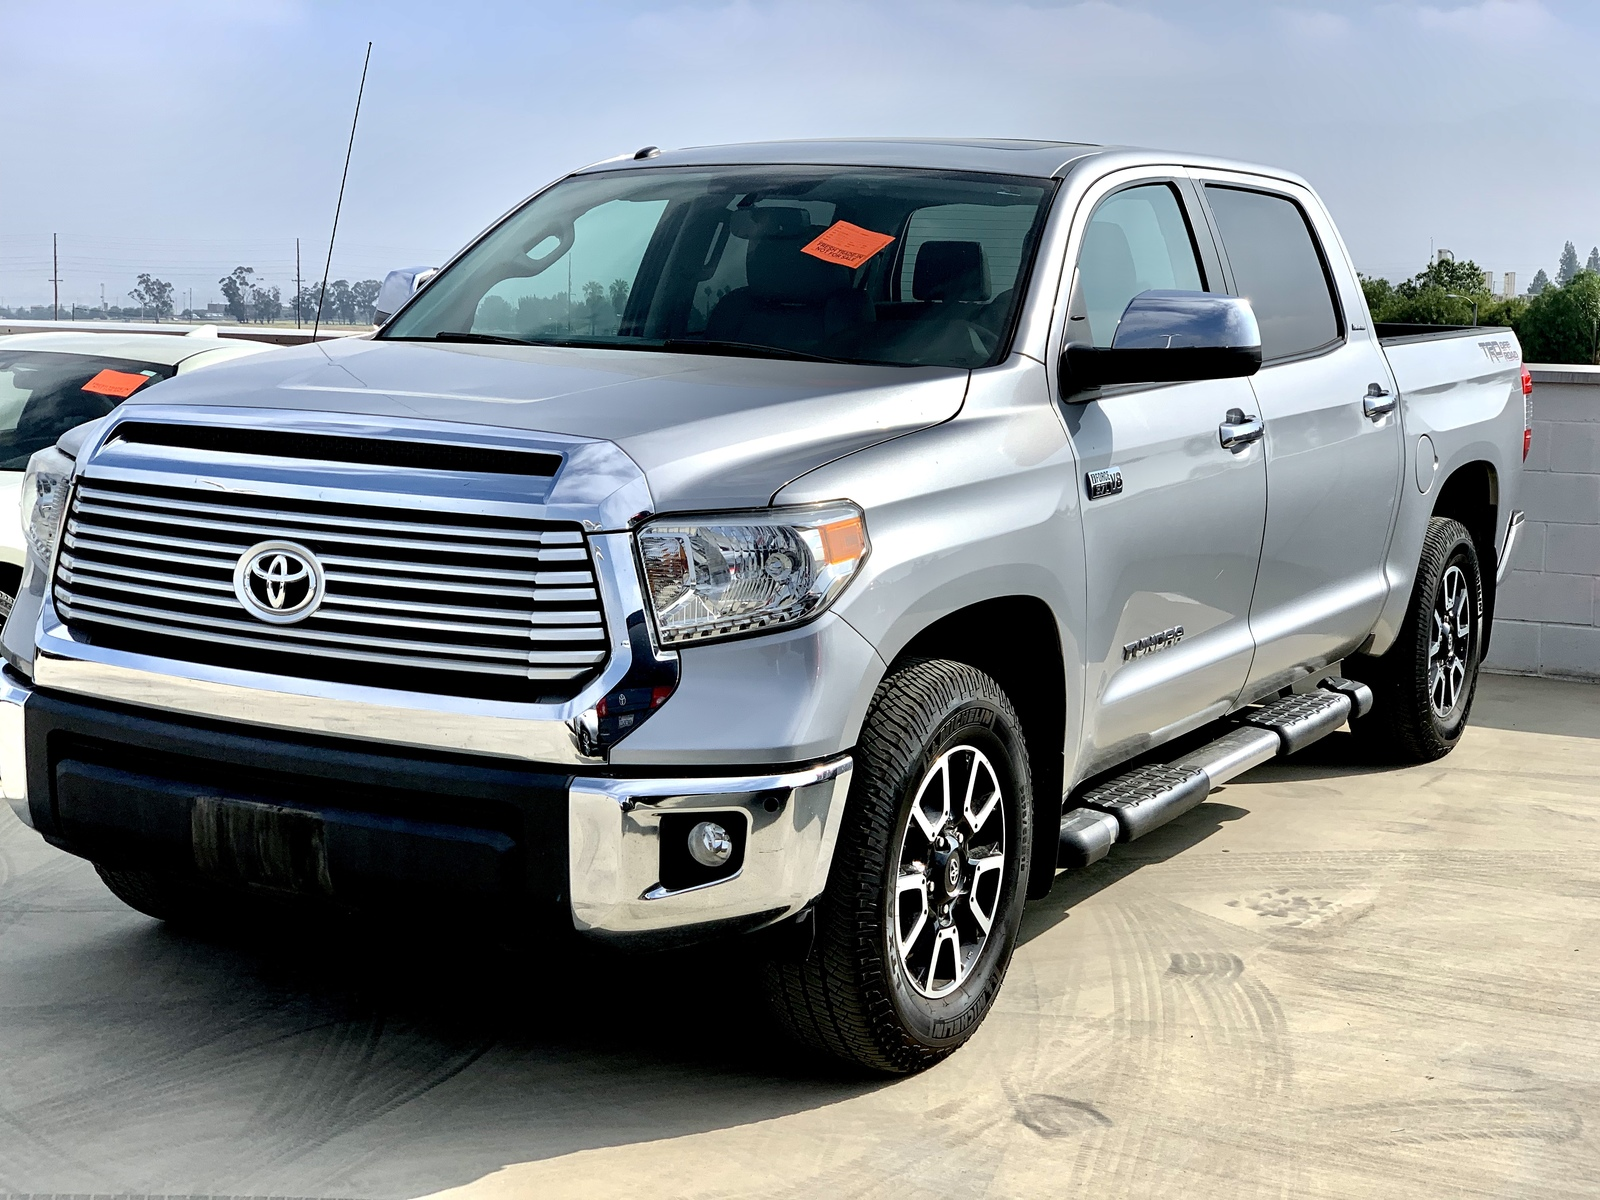 Certified Pre-Owned 2014 Toyota Tundra 2WD Truck LTD